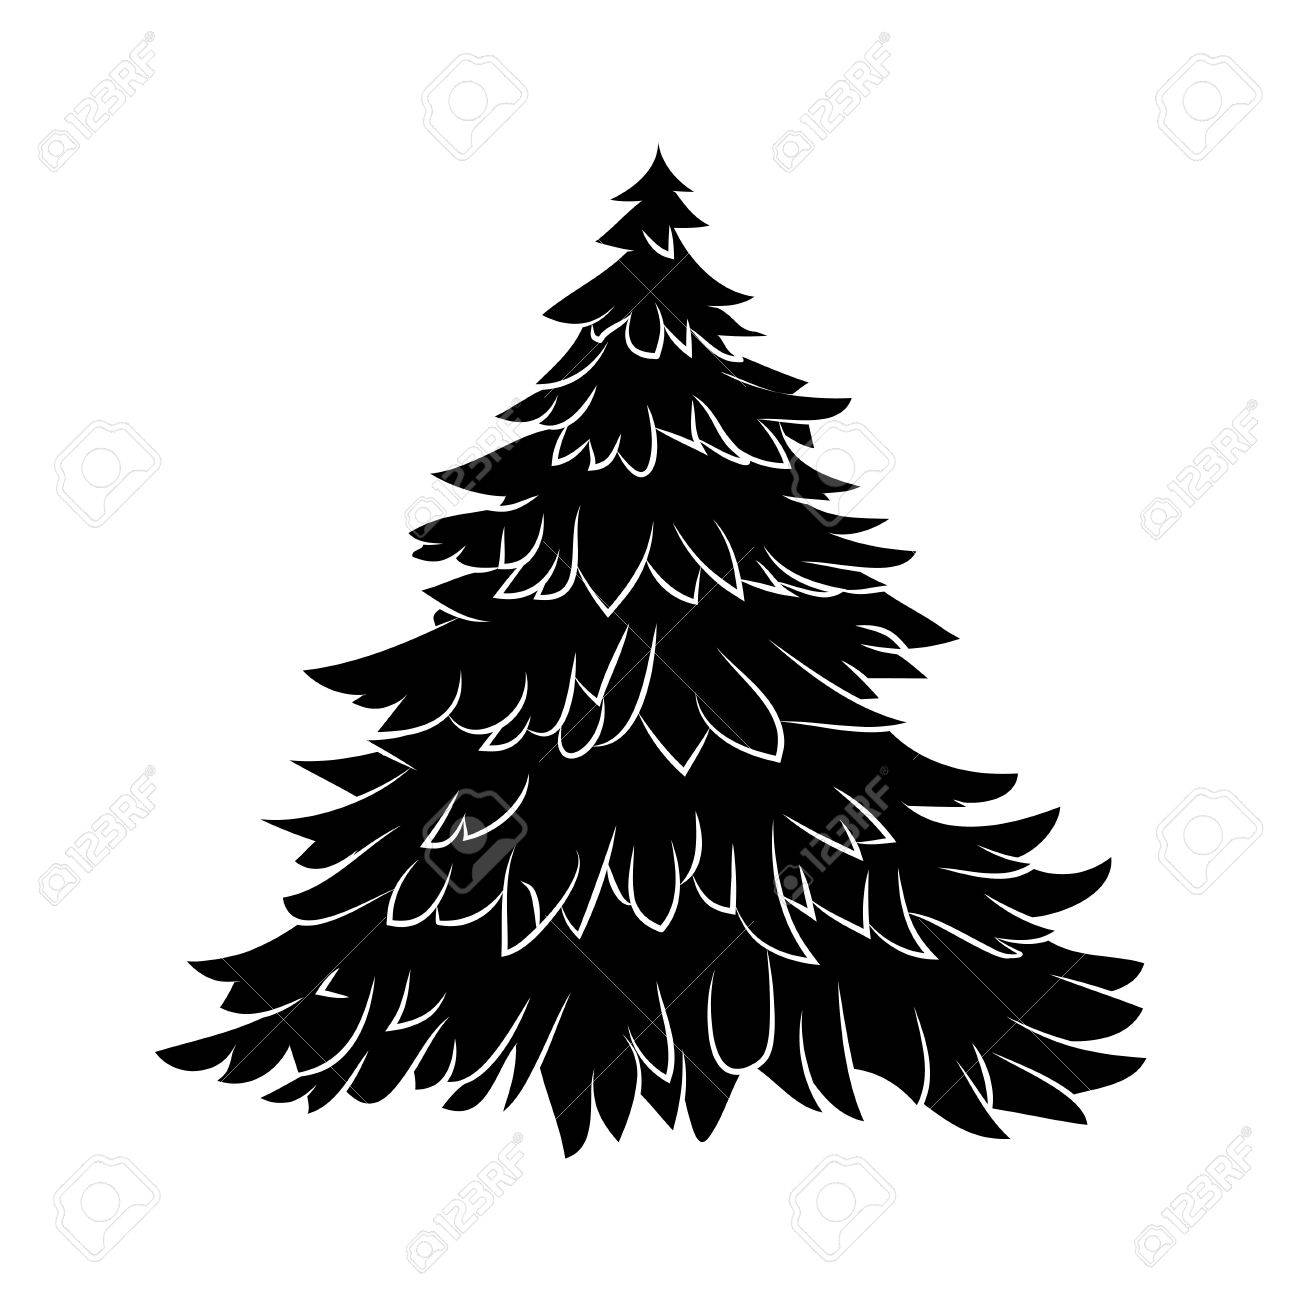 Christmas Holly Silhouette.Christmas Tree Silhouette Cartoon Design For Card Icon Symbol